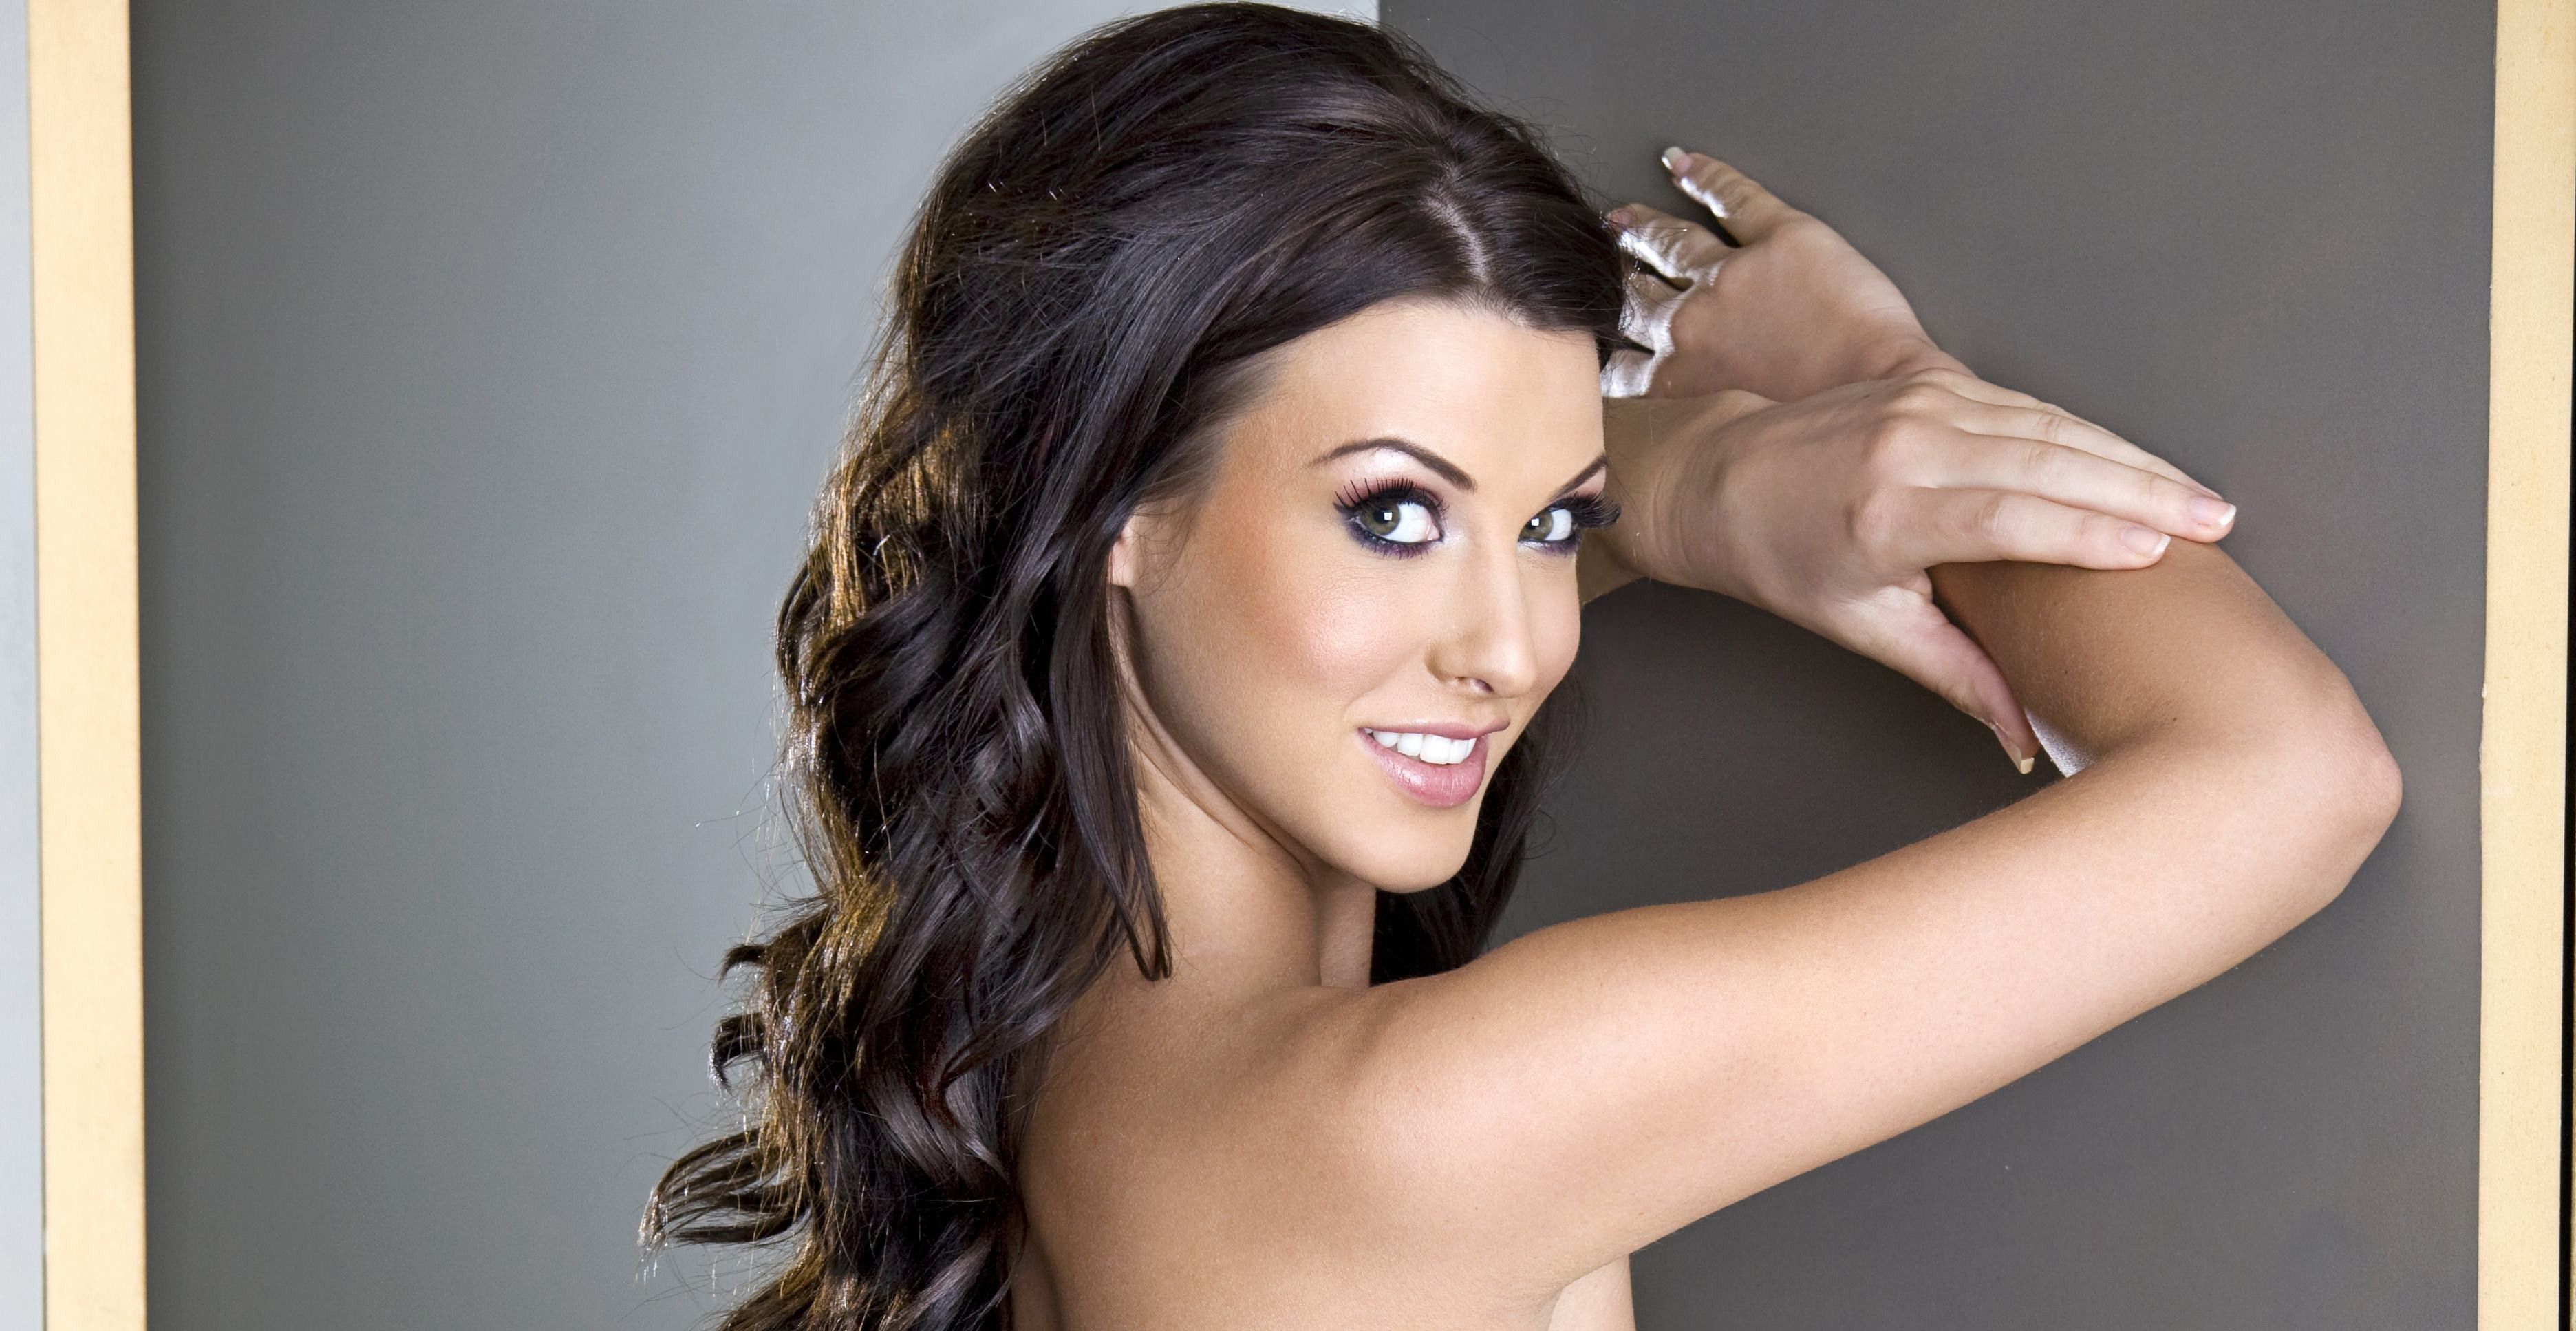 alice goodwin face pinupfiles.com smiling portrait women